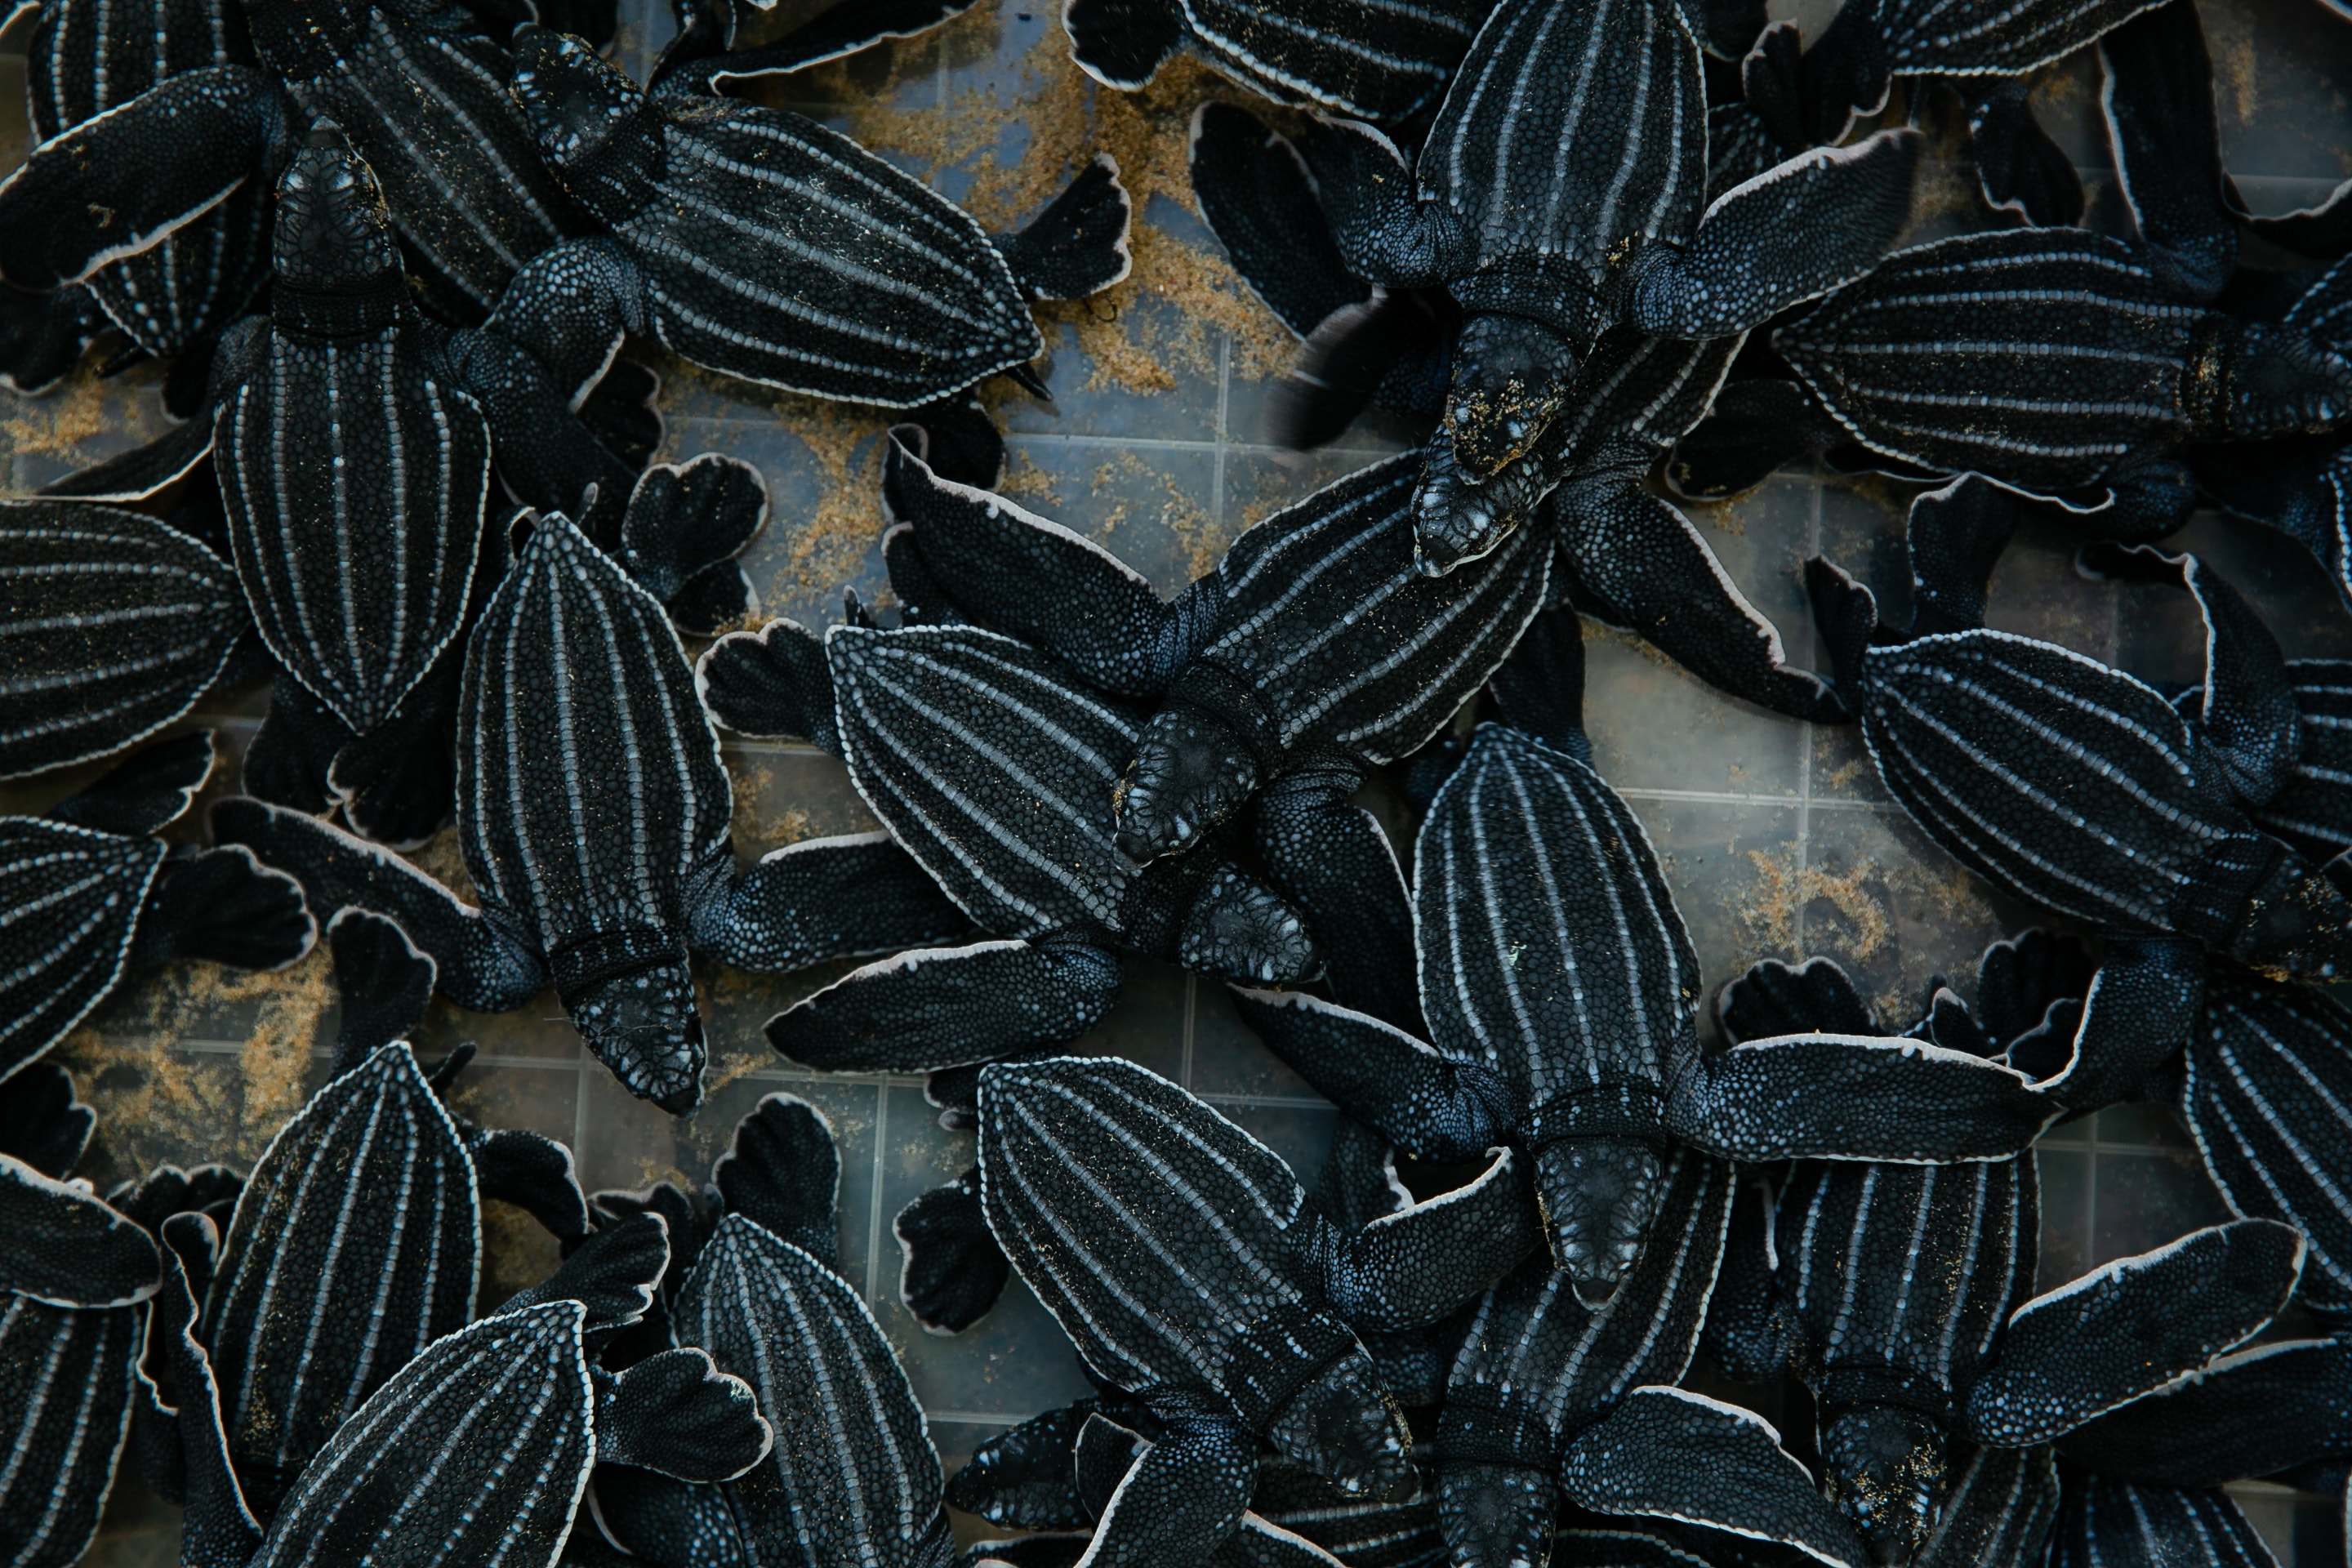 A litter of baby turtles.